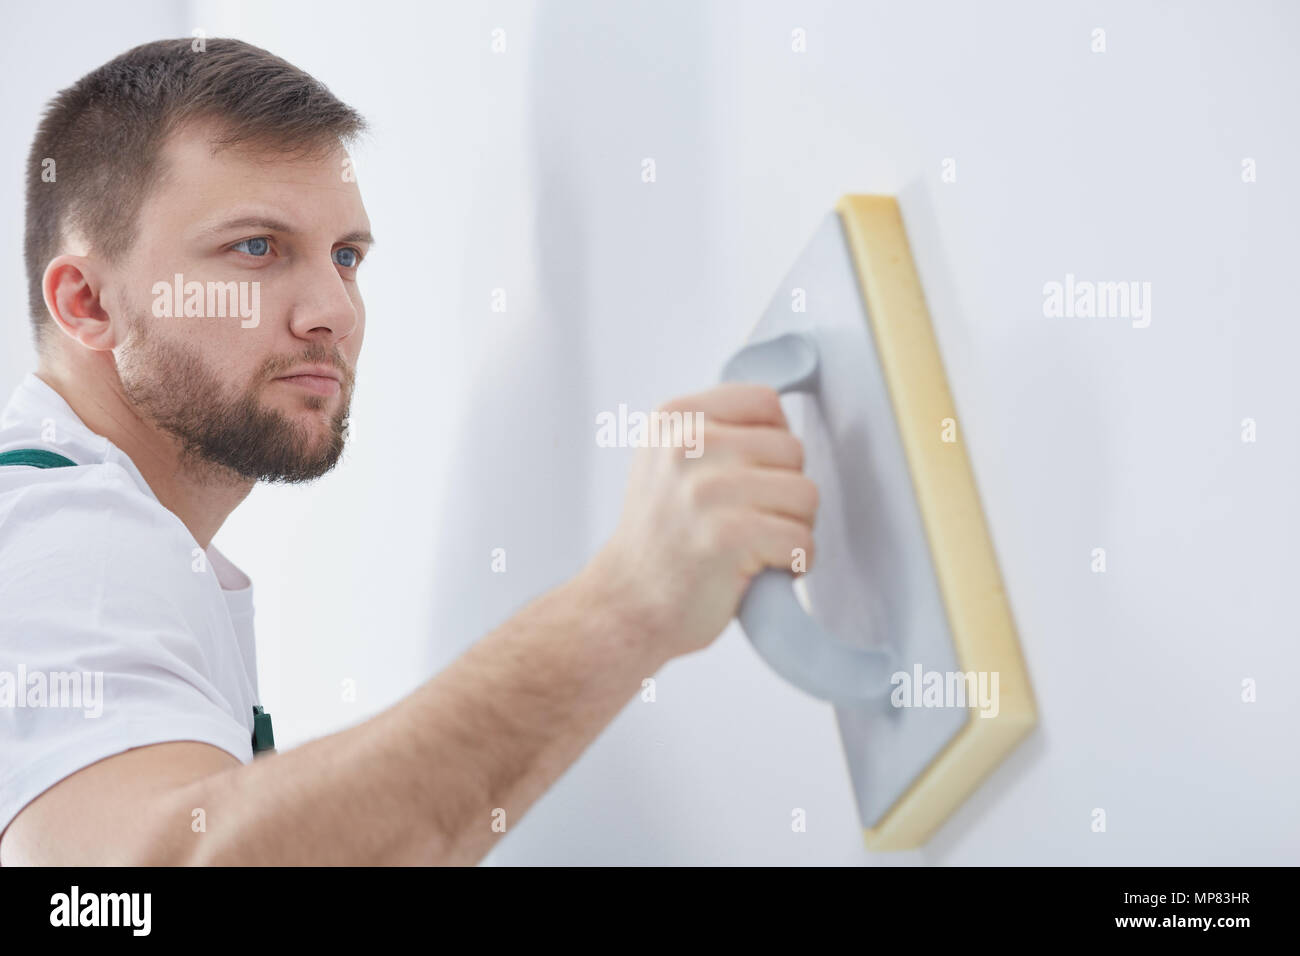 Young specialist rubbing down the wall before painting - Stock Image